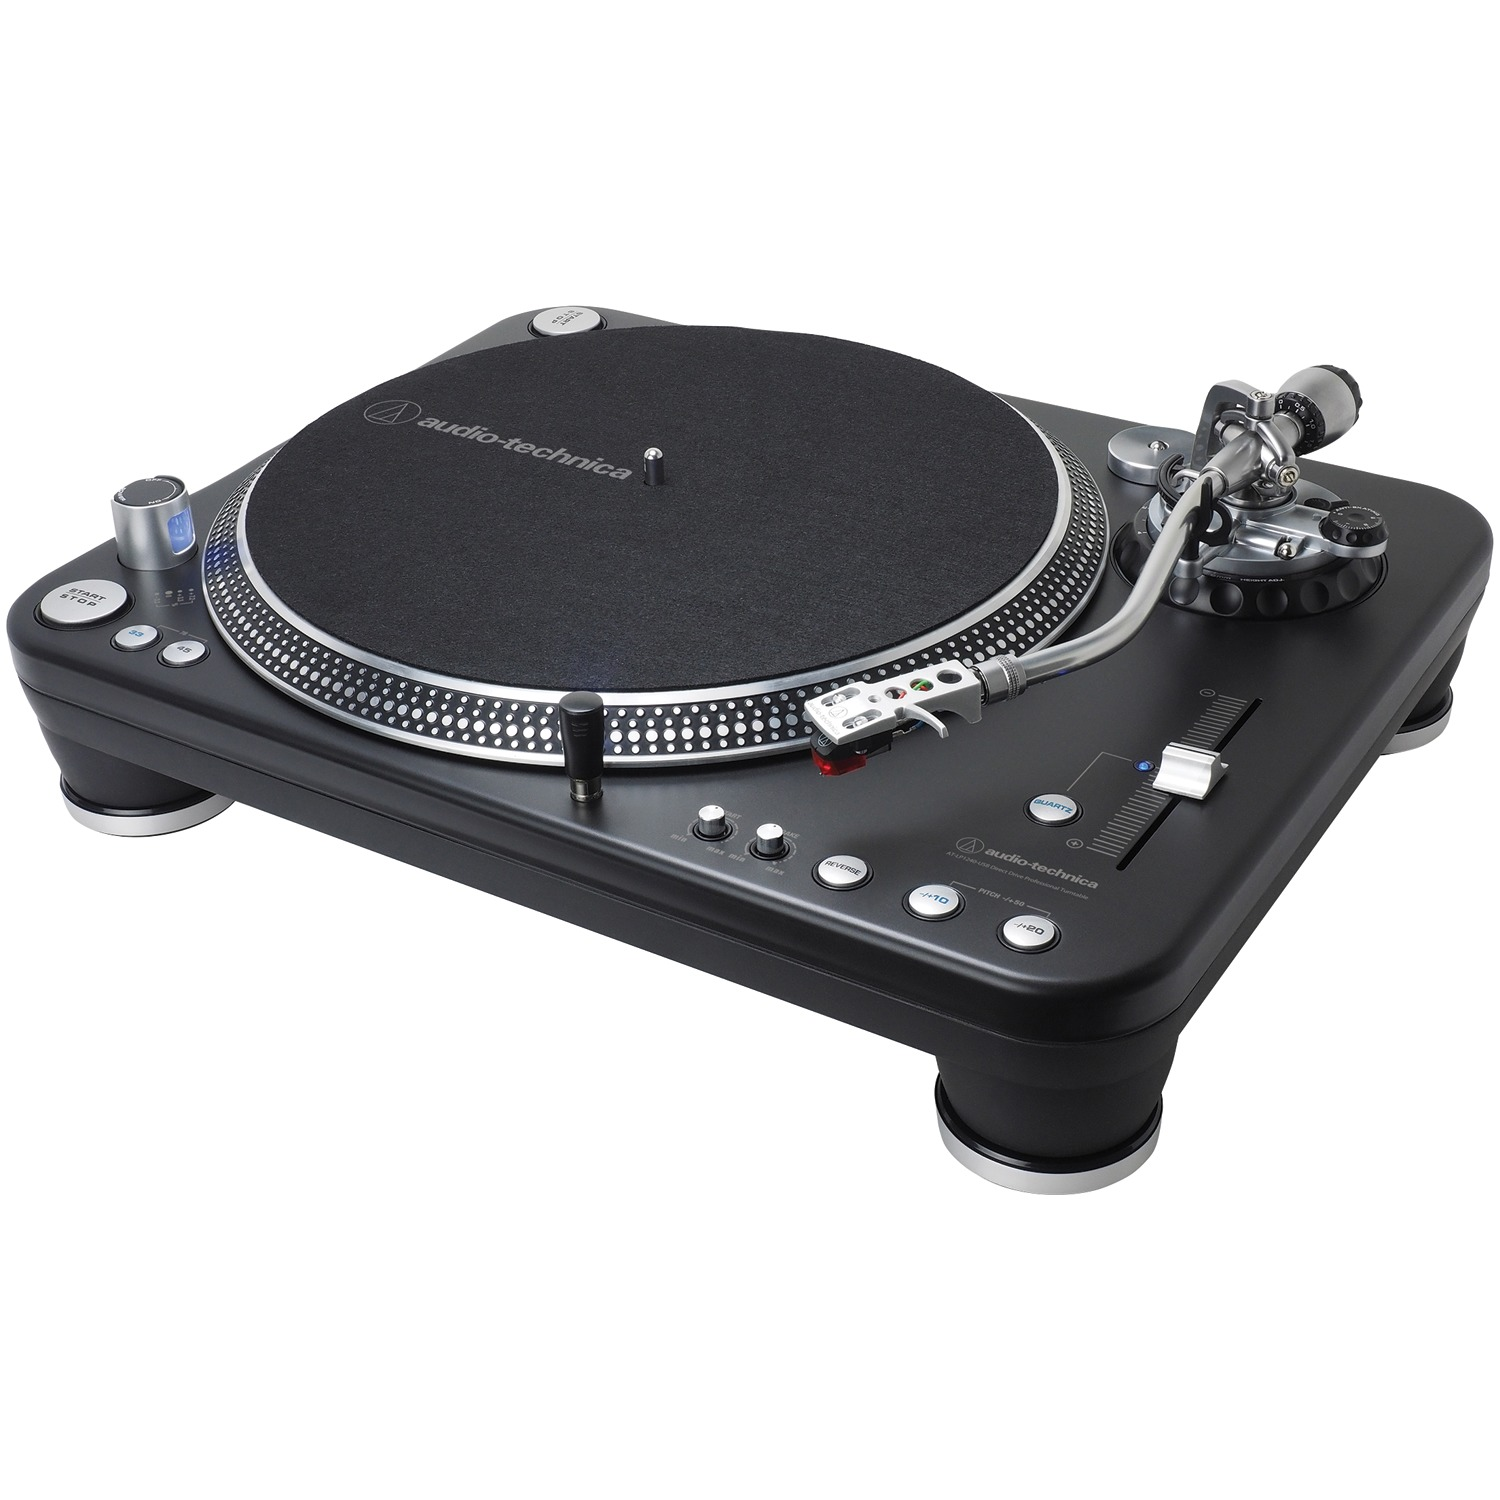 Audio-Technica AT-LP1240-USBXP Direct-Drive Professional Dj USB & Analog Stereo Turntable by Audio-Technica